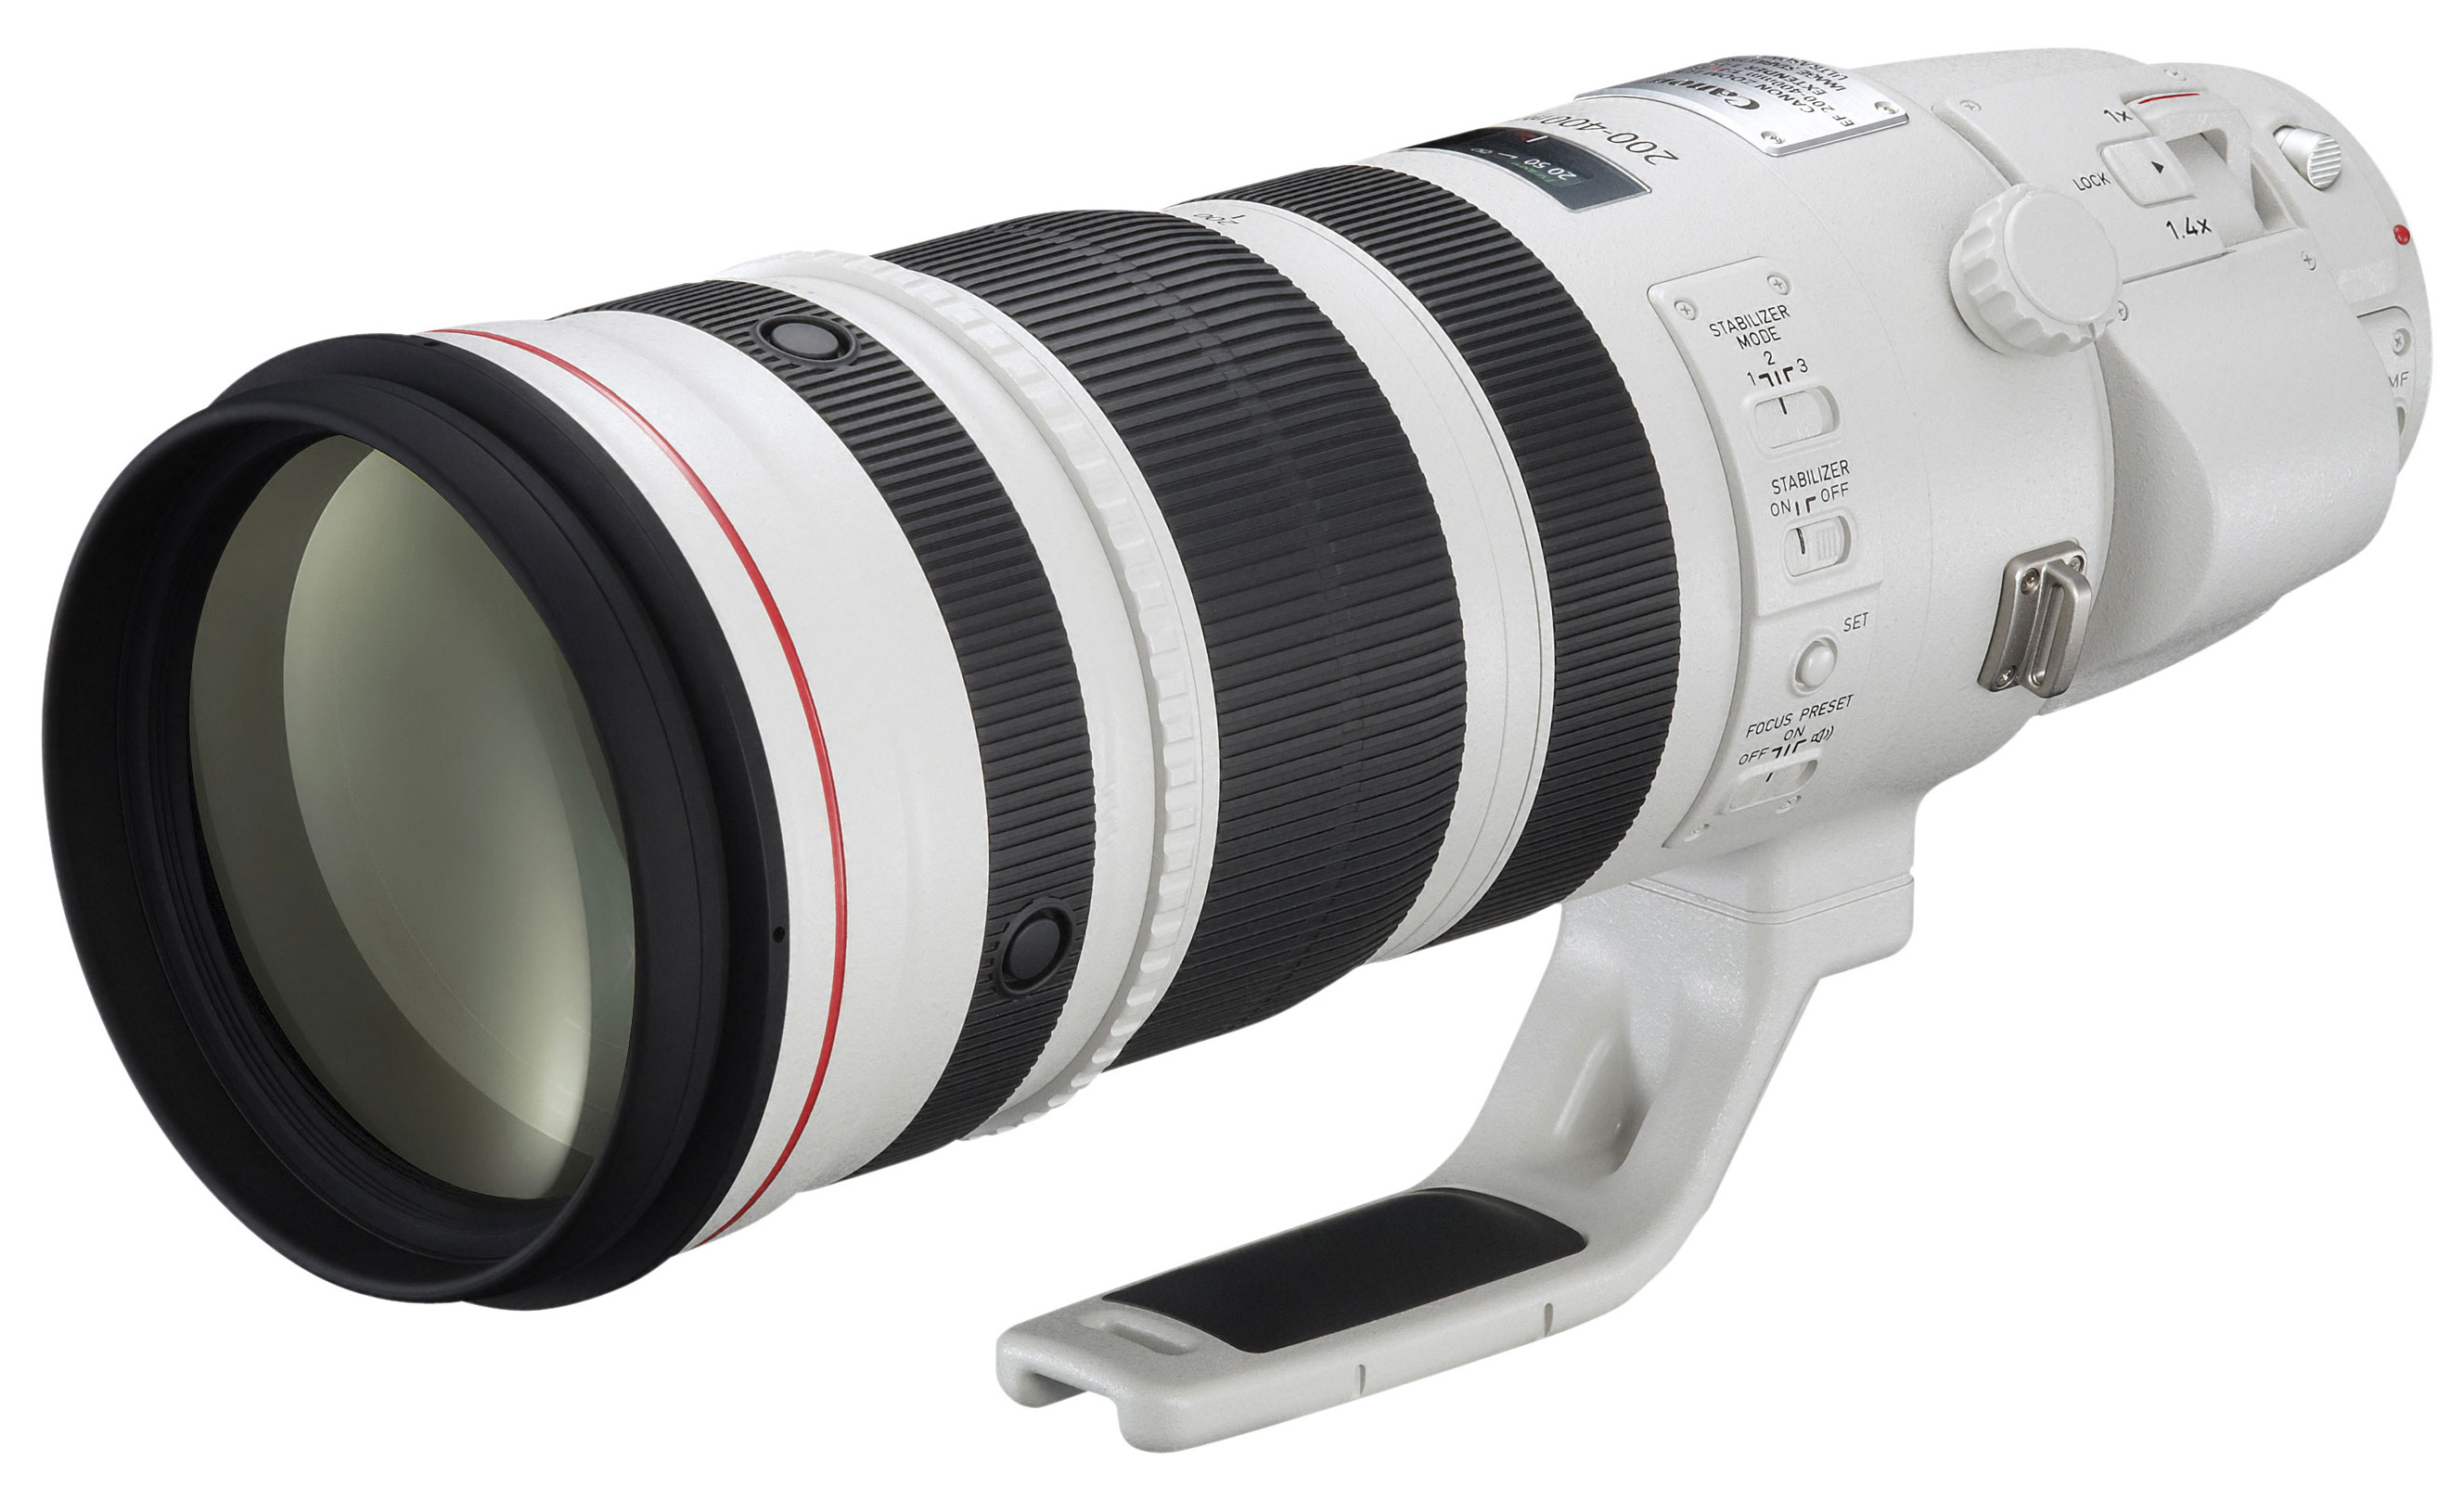 Image of Canon EF 200-400mm f/4L IS USM Extender 1.4x Lens